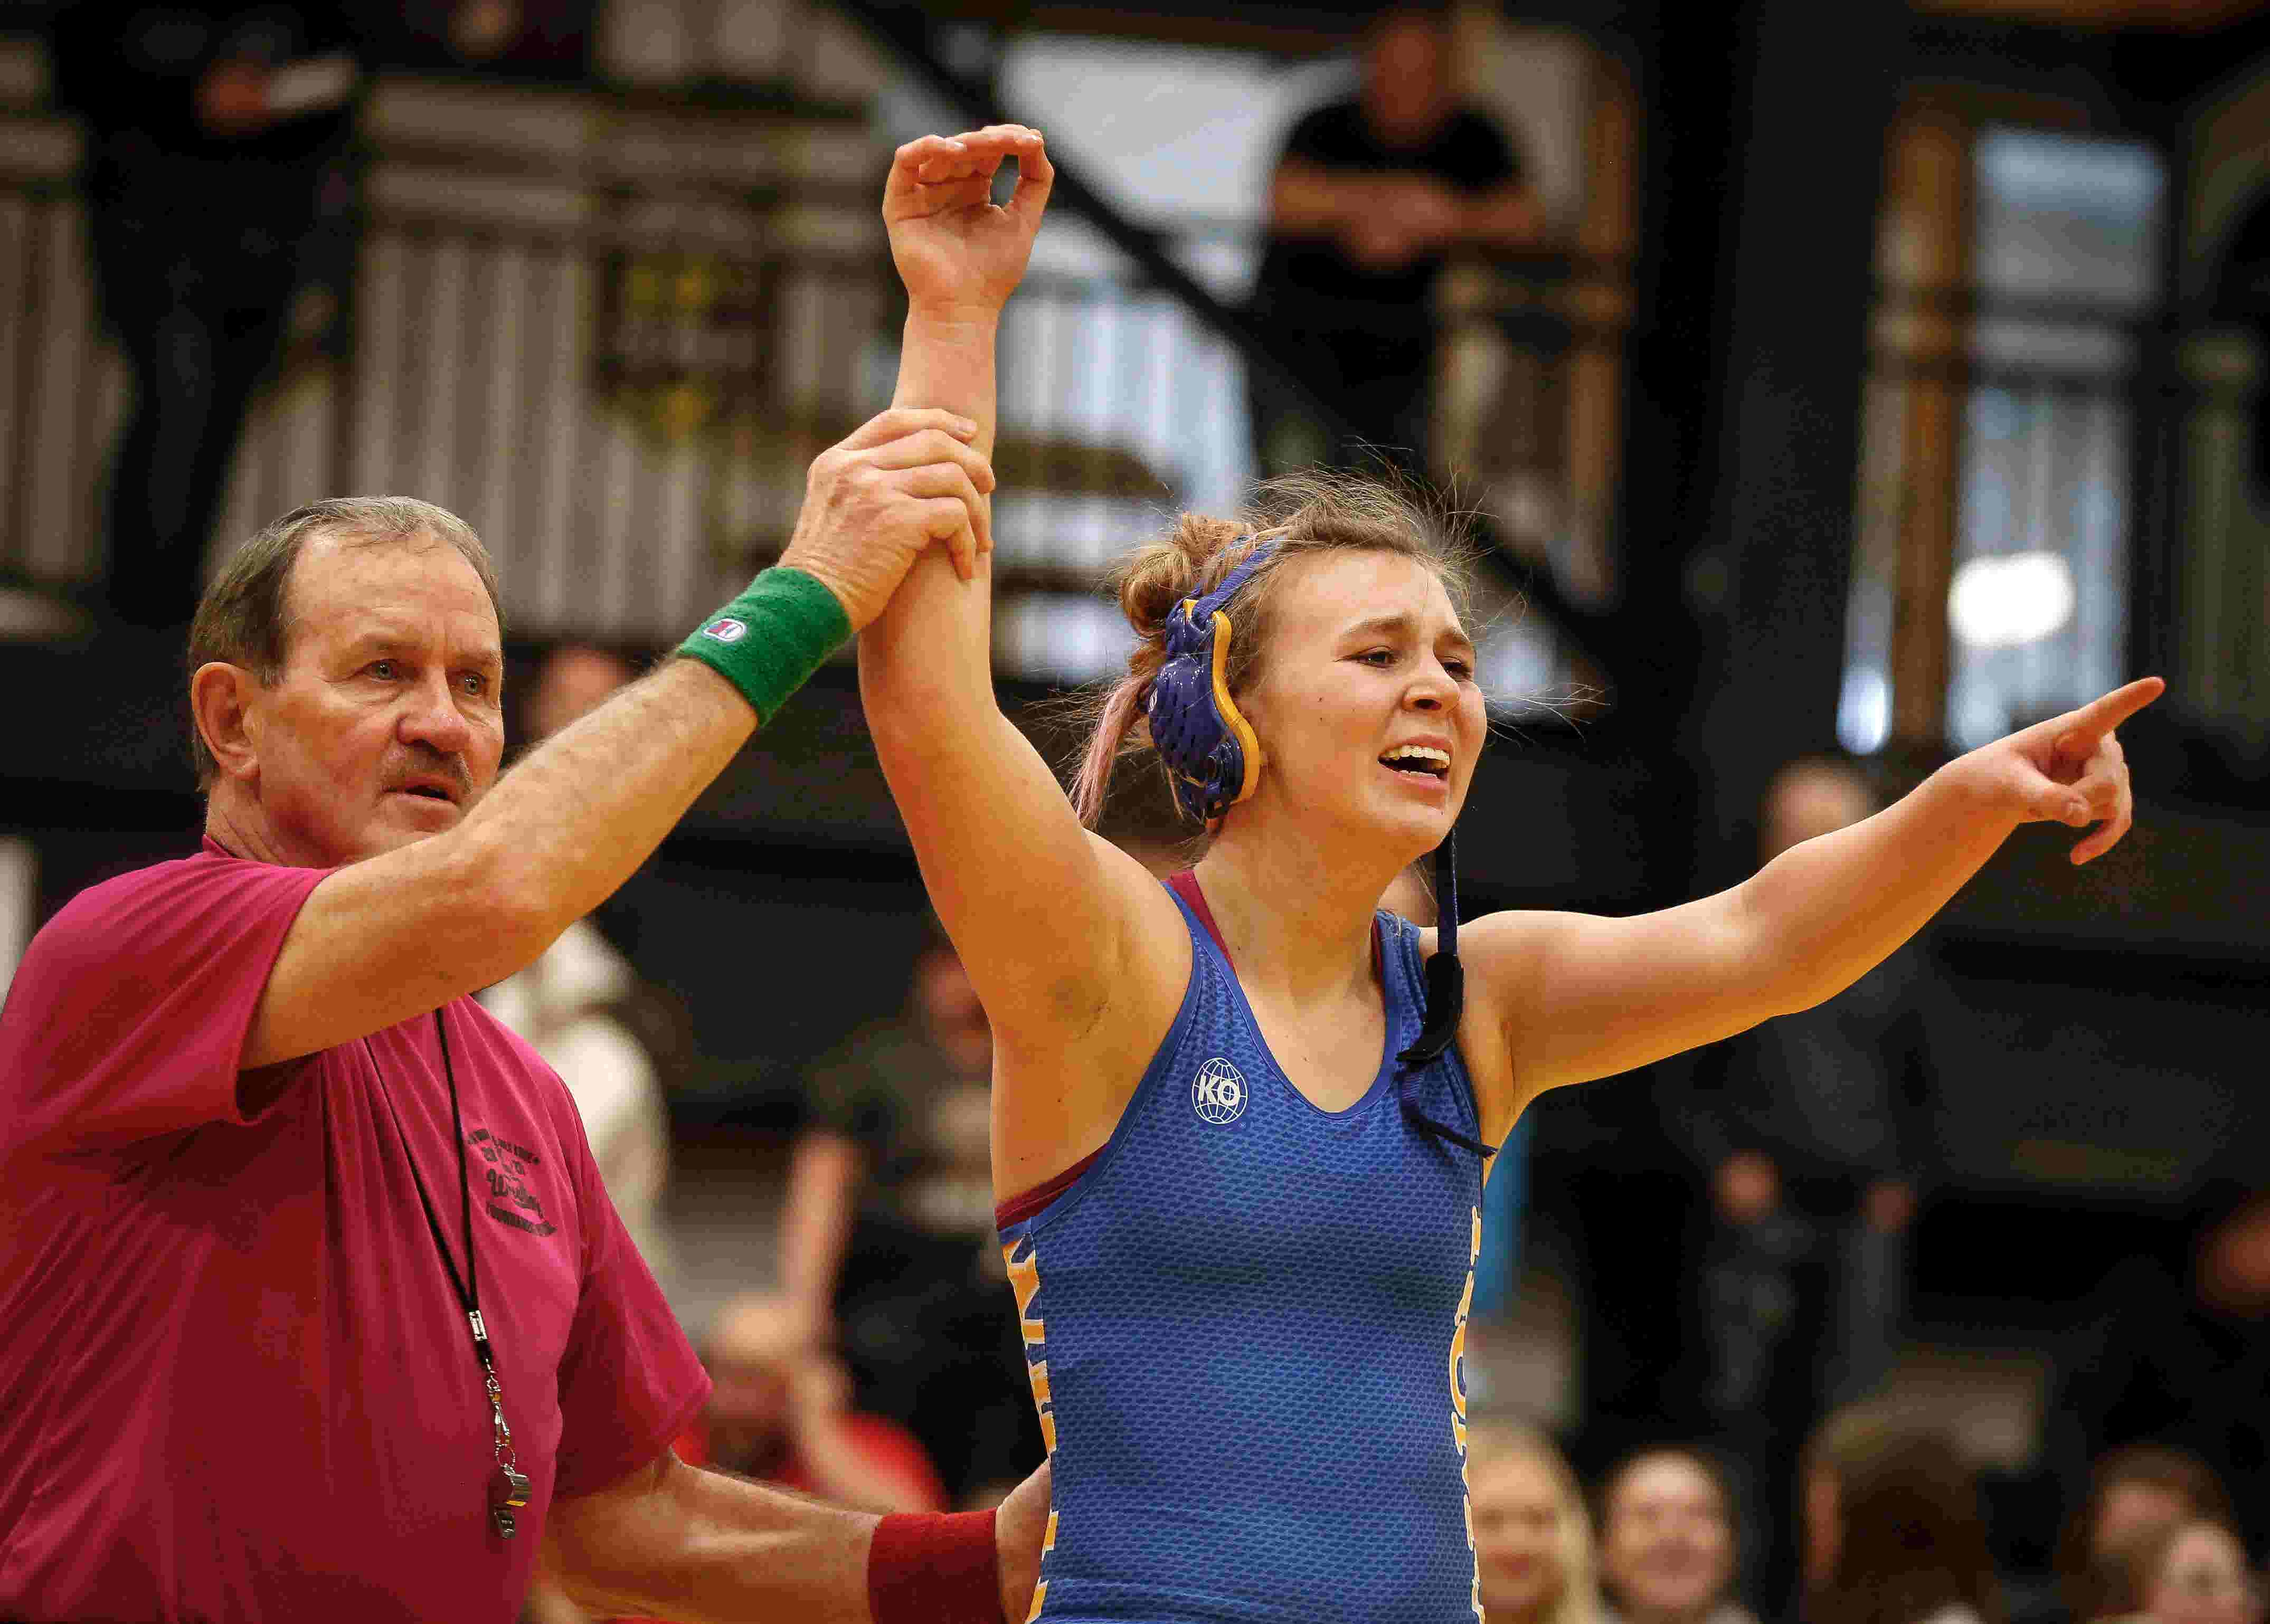 Humboldt's Kendal Clark, the 170-pound girls' state wrestling champ